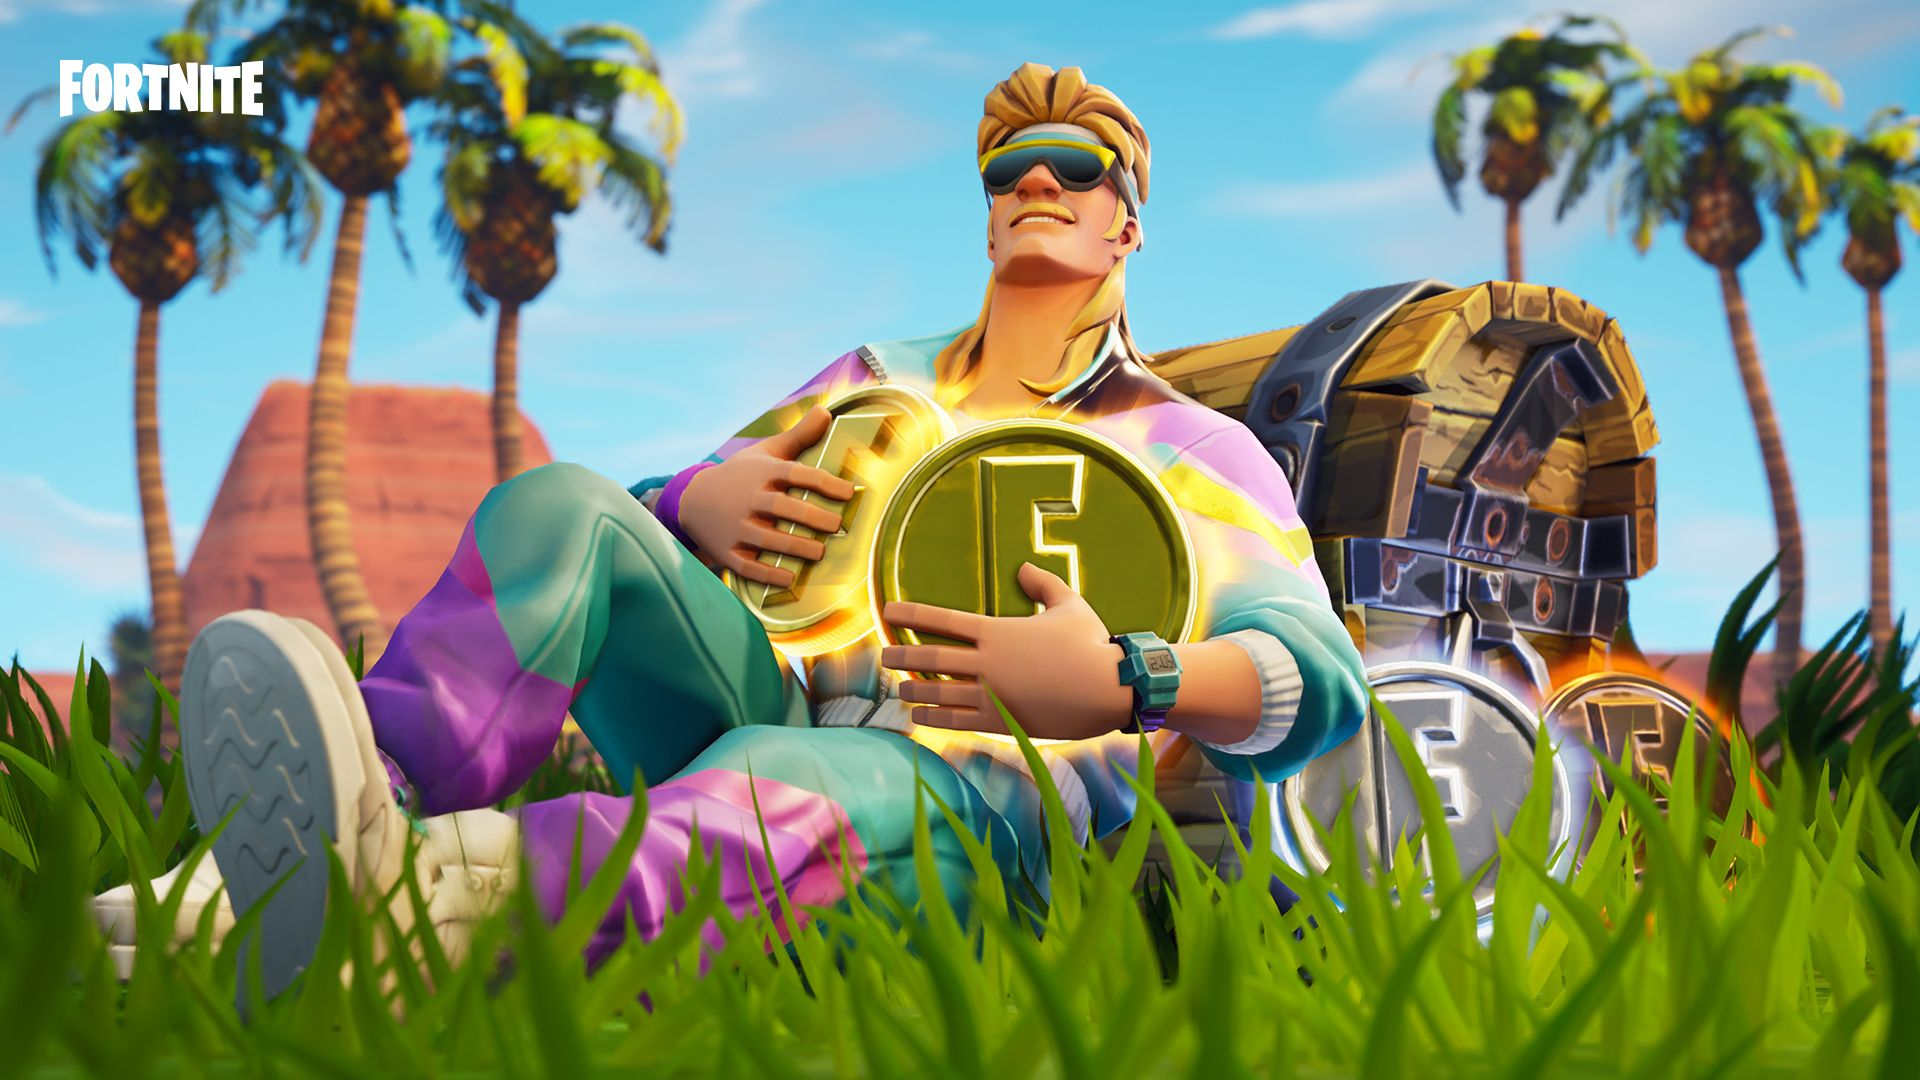 Funny Fortnite Wallpapers Top Free Funny Fortnite Backgrounds Wallpaperaccess